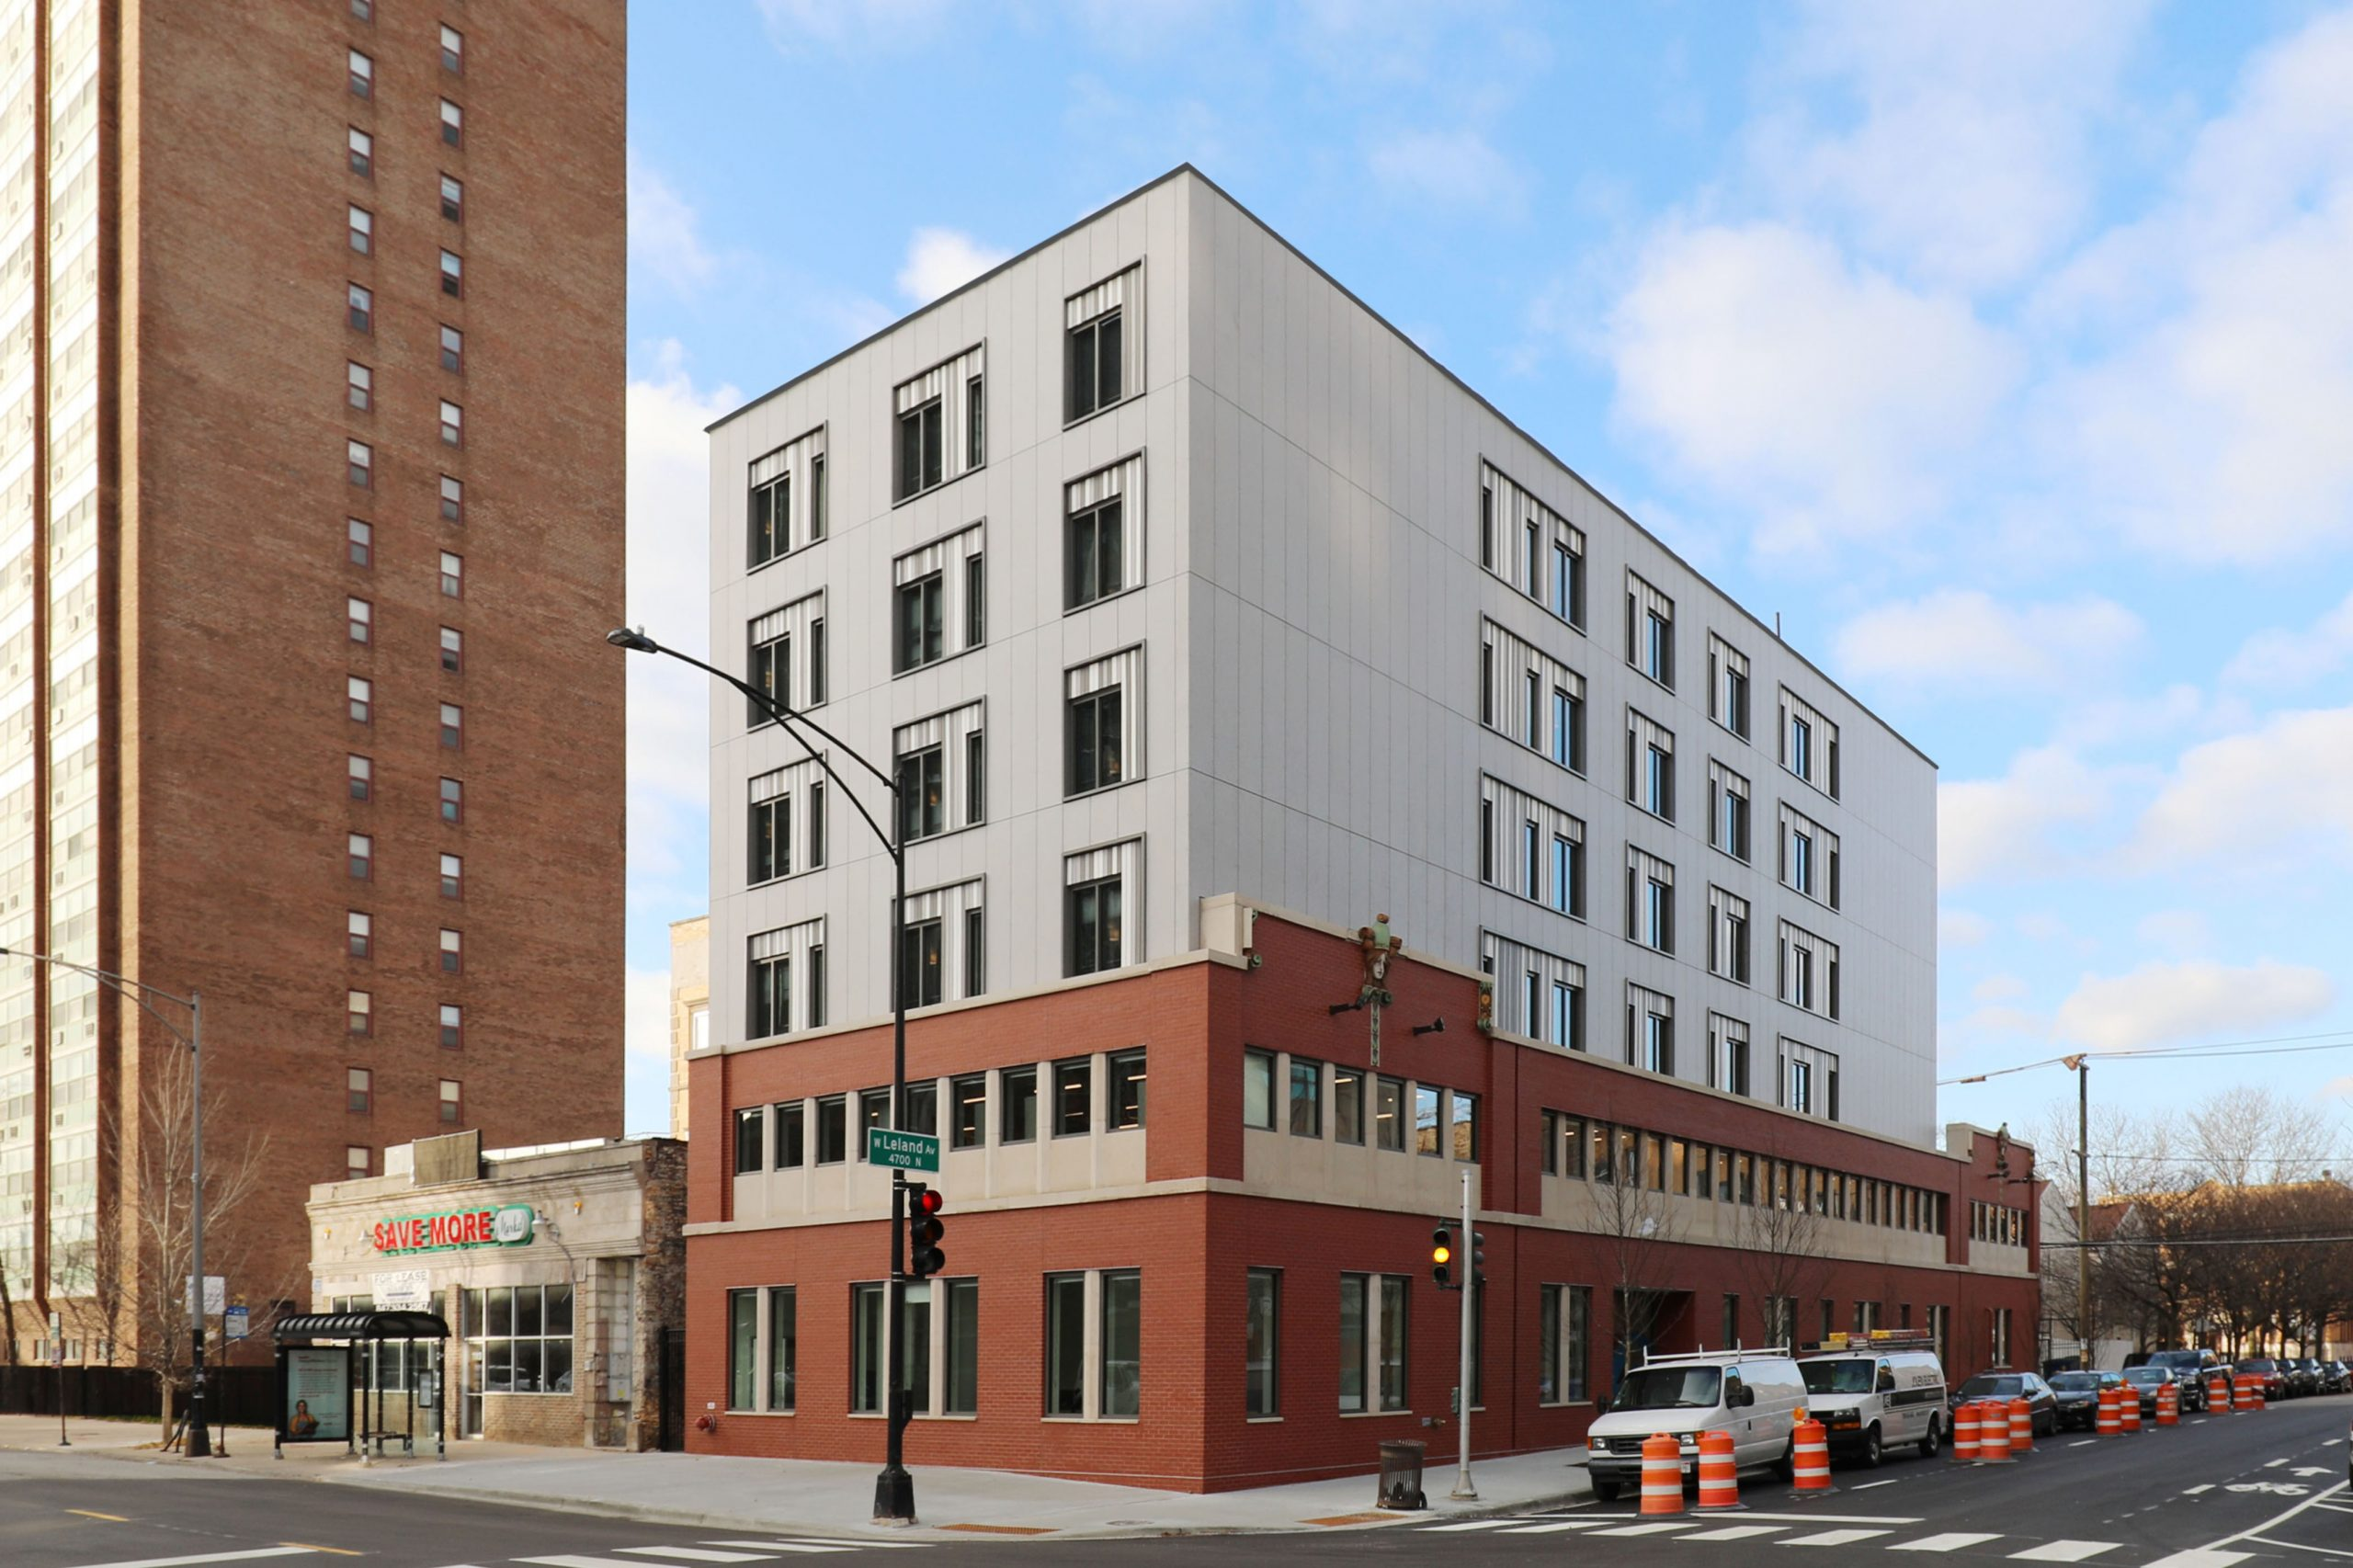 Skender Completes Construction on Sarah's Circle's Six-story Supportive Housing Facility for Women on Chicago's North Side